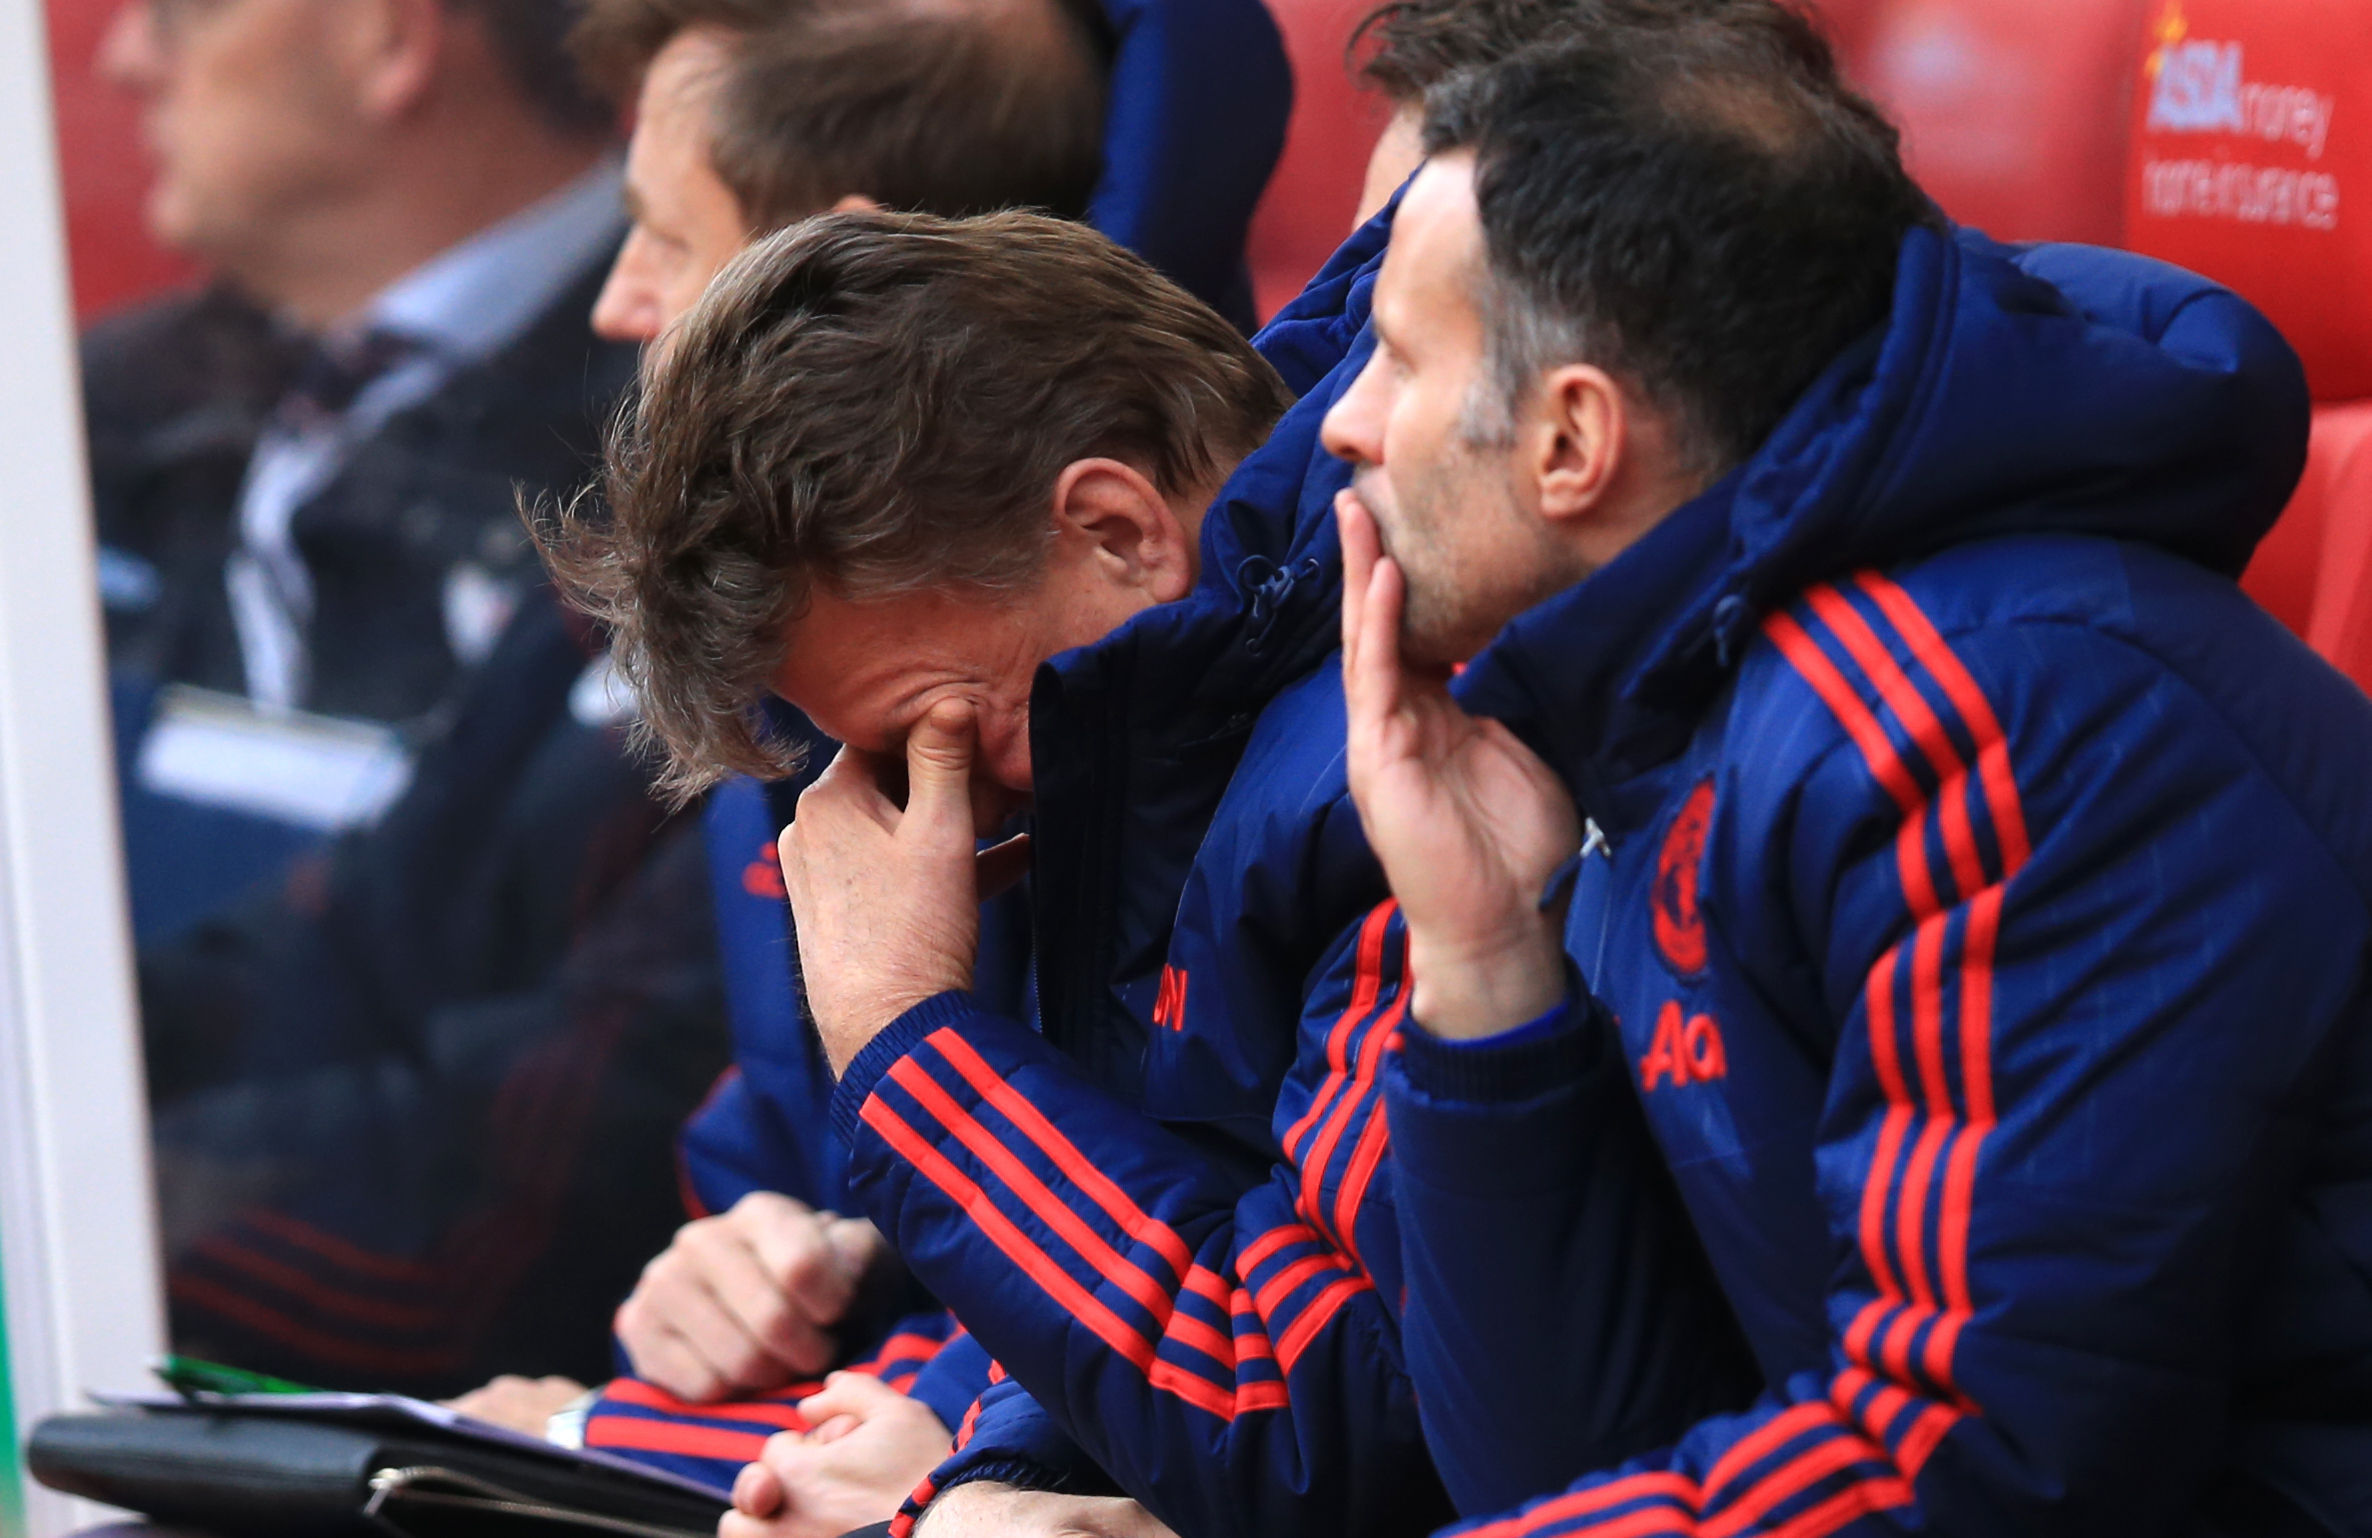 Louis van Gaal has been feeling the pressure as results have faltered. (PA)